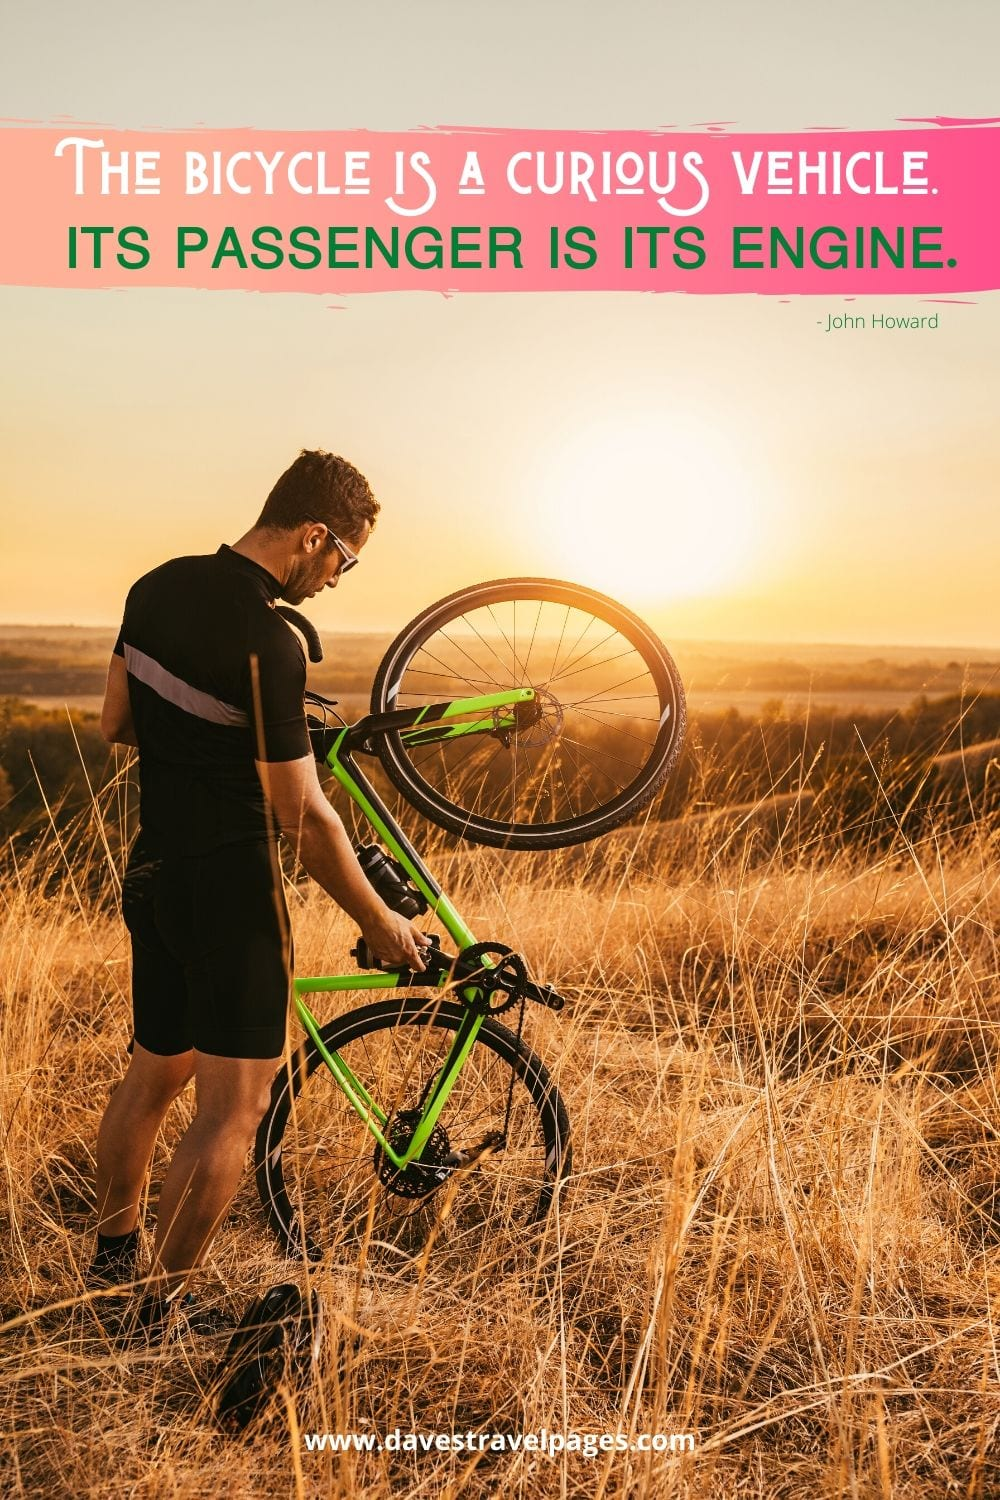 Cycle quote - The bicycle is a curious vehicle. Its passenger is its engine. ~ John Howard